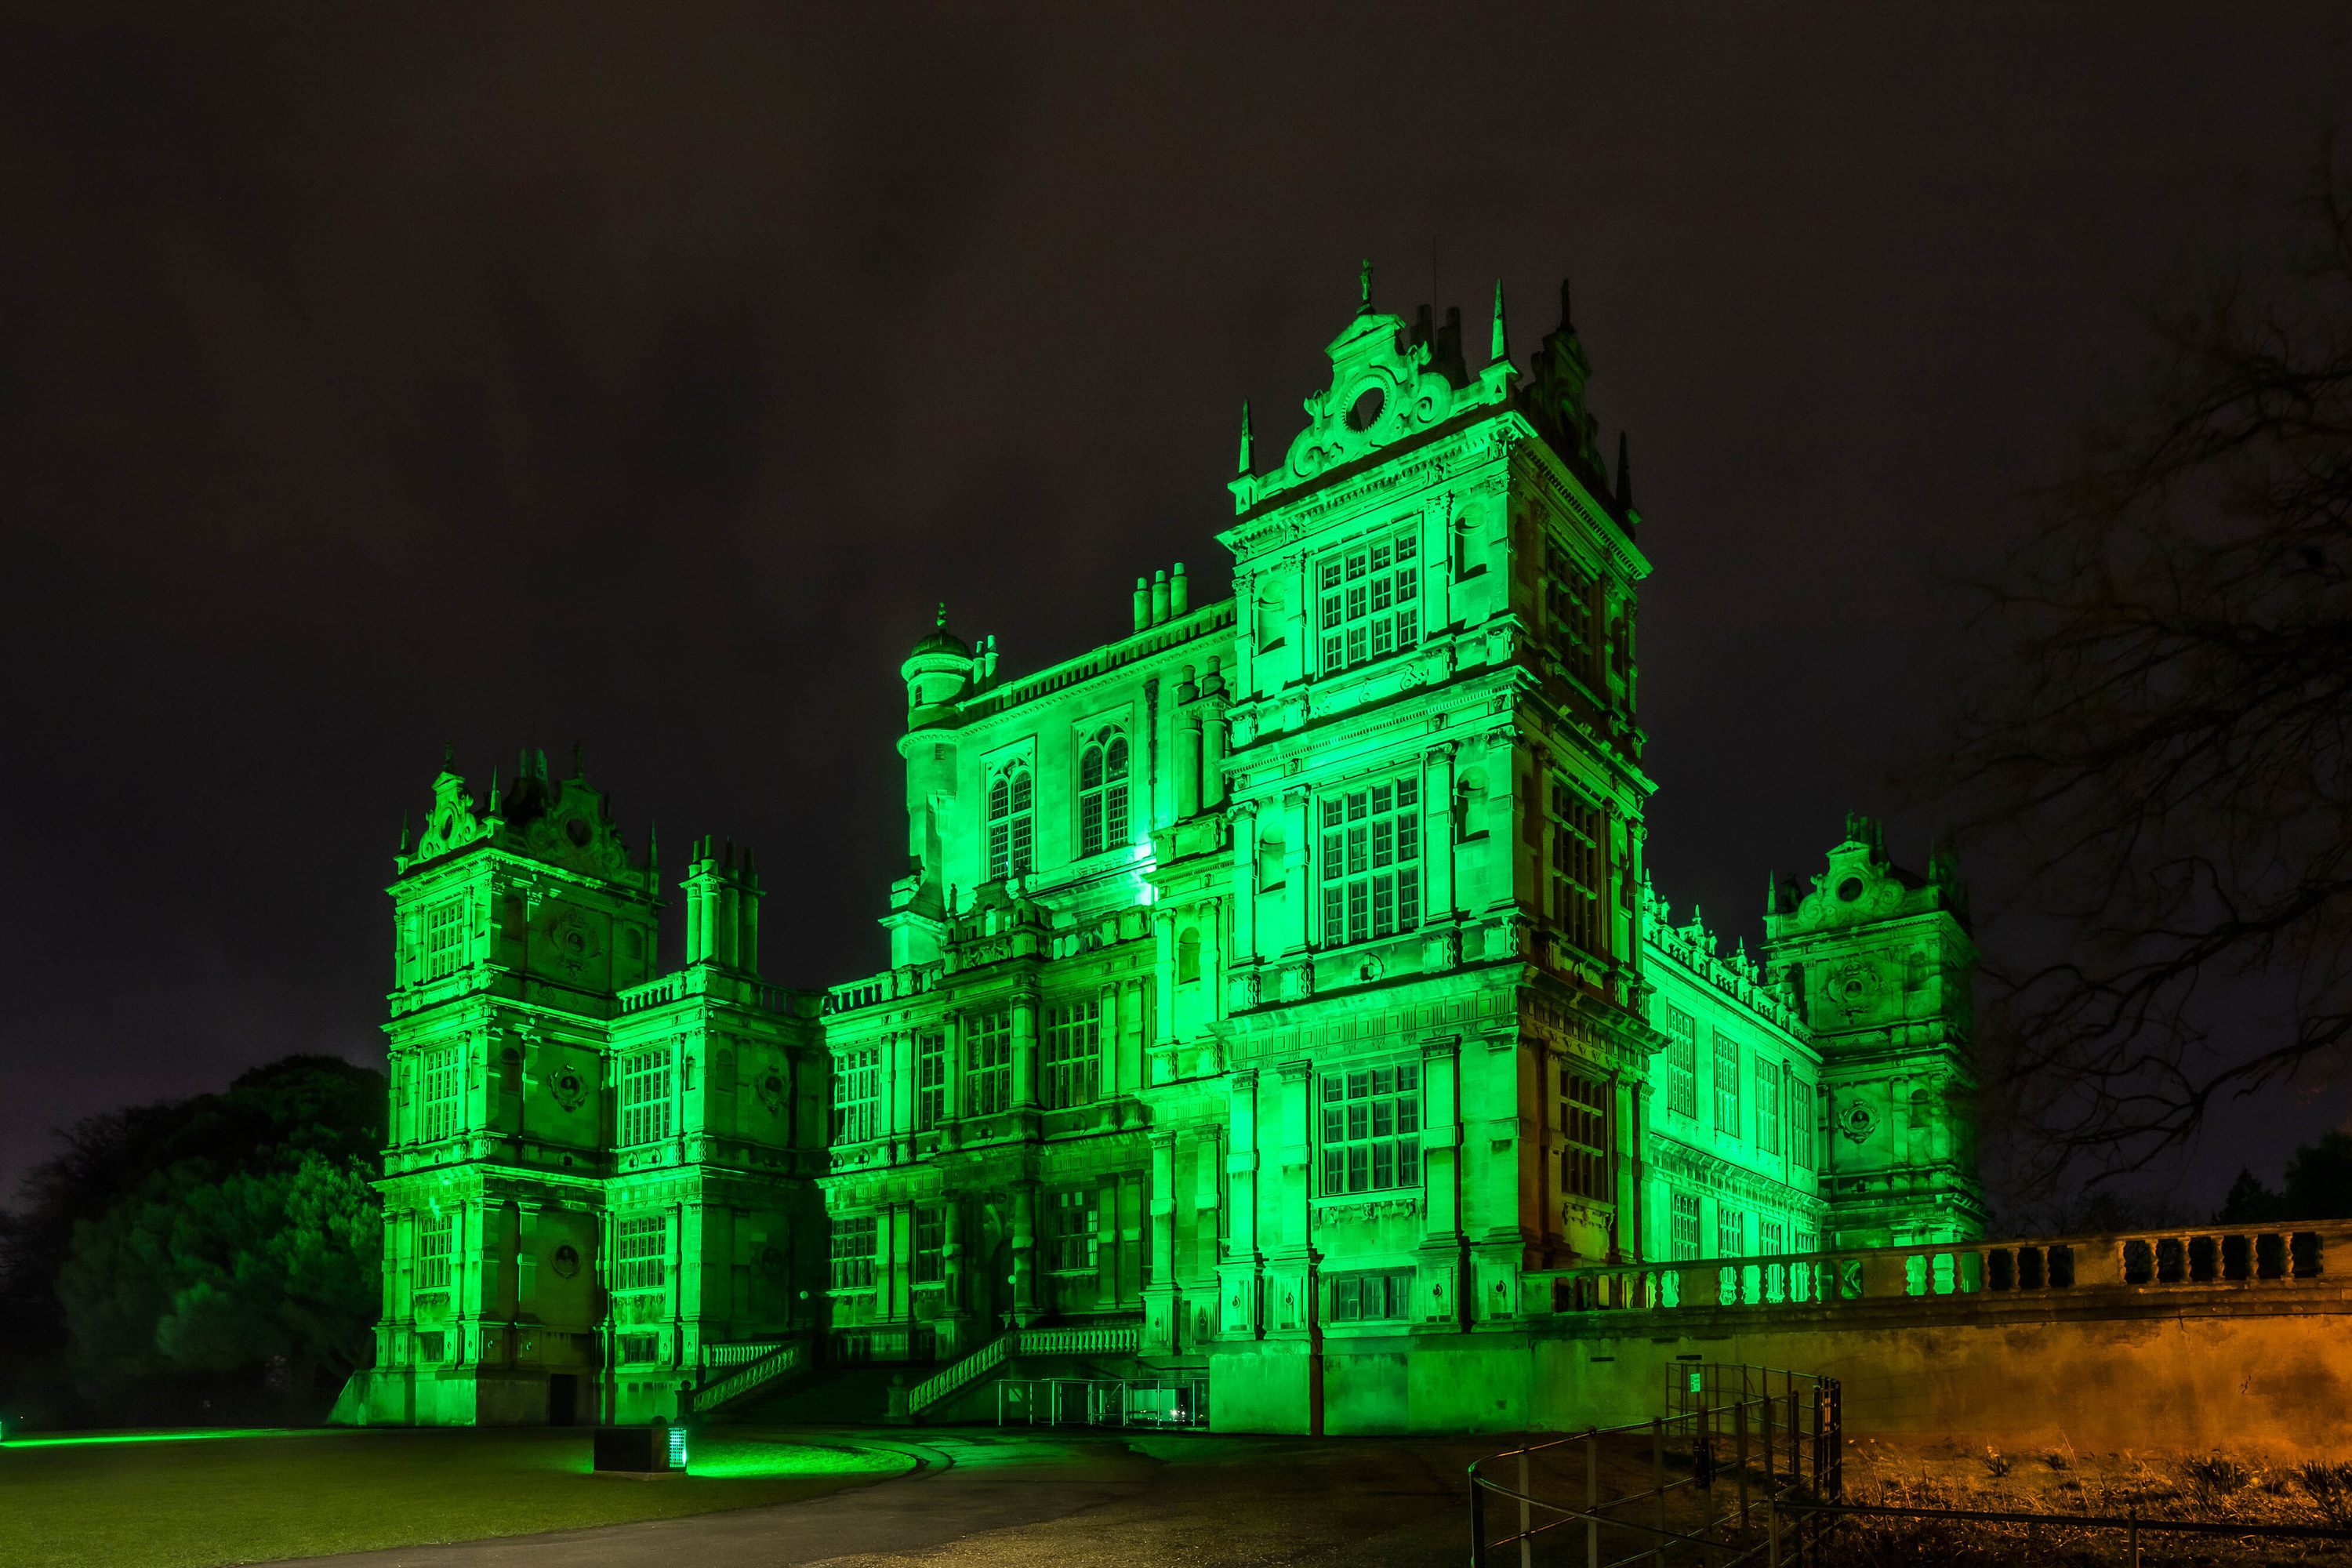 A castle lit up with green lights in honor of St Patricks day